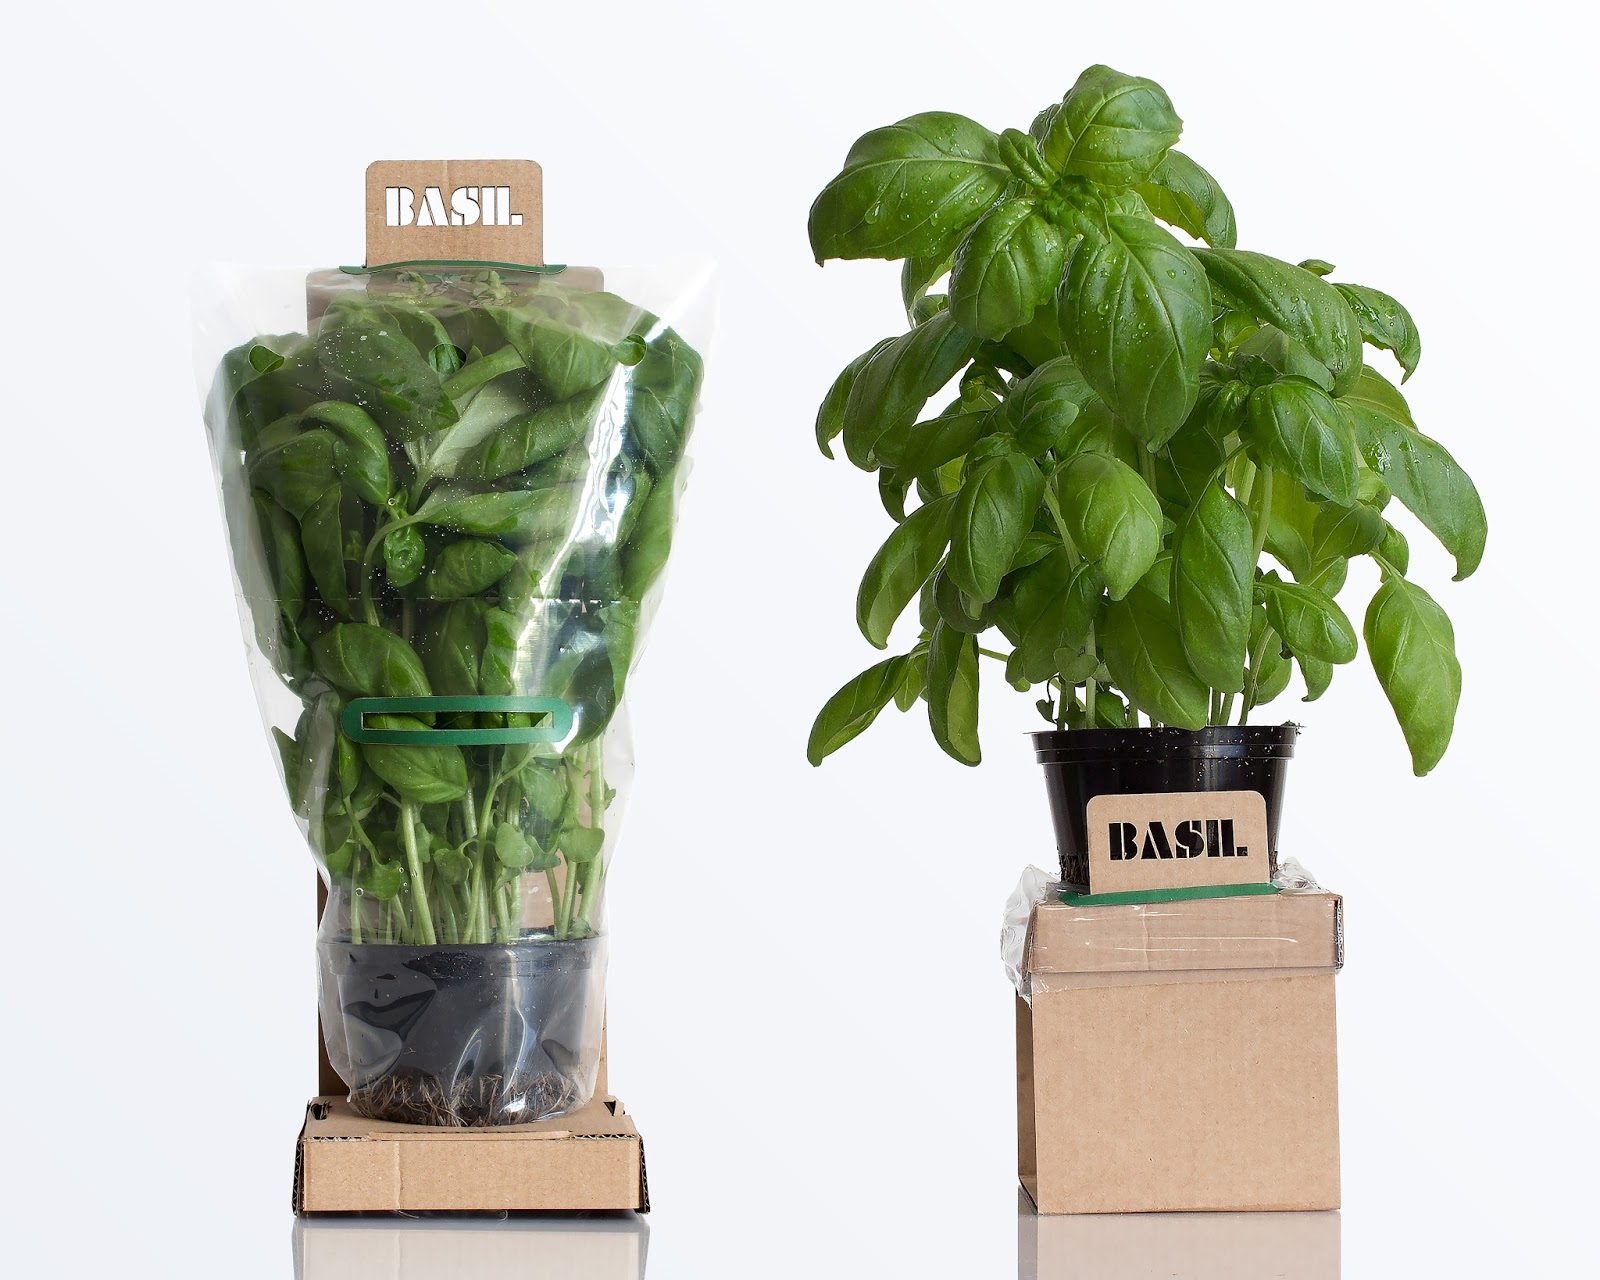 Self Watering Herbs Student Project On Packaging Of The